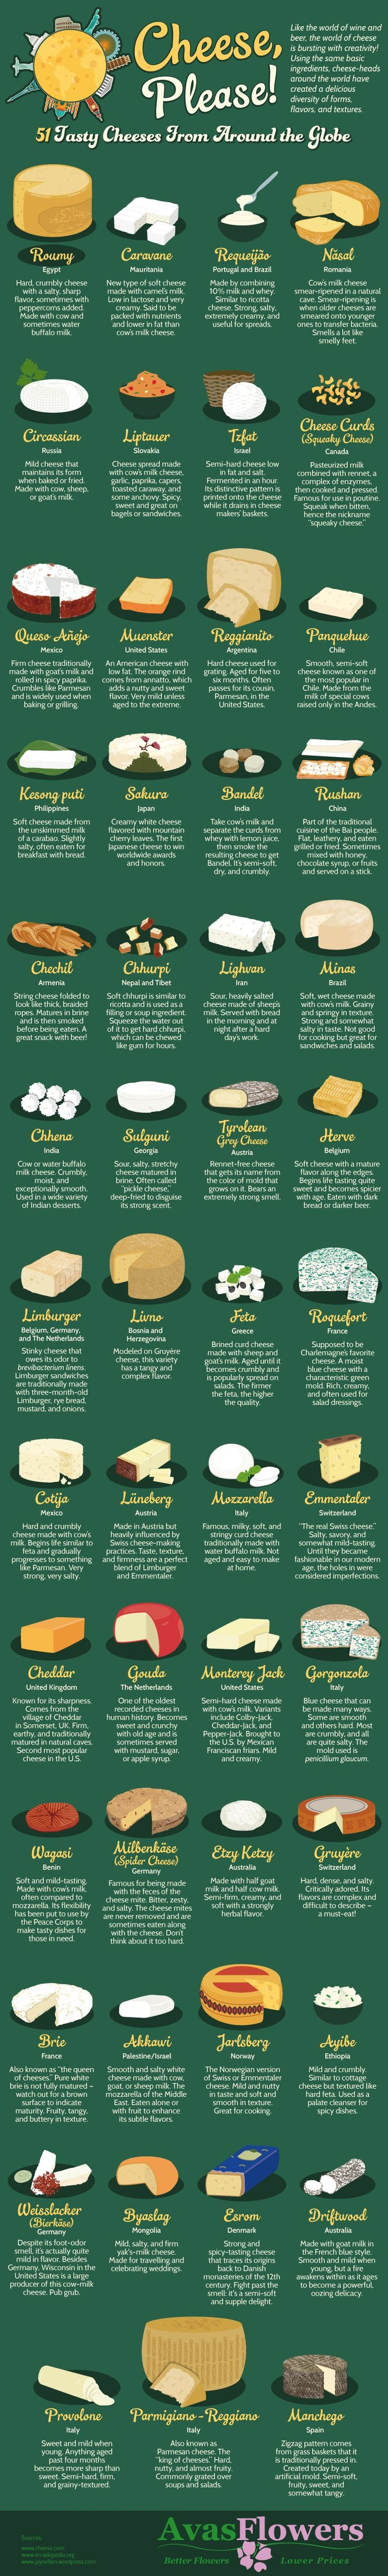 The more you know - Cheese